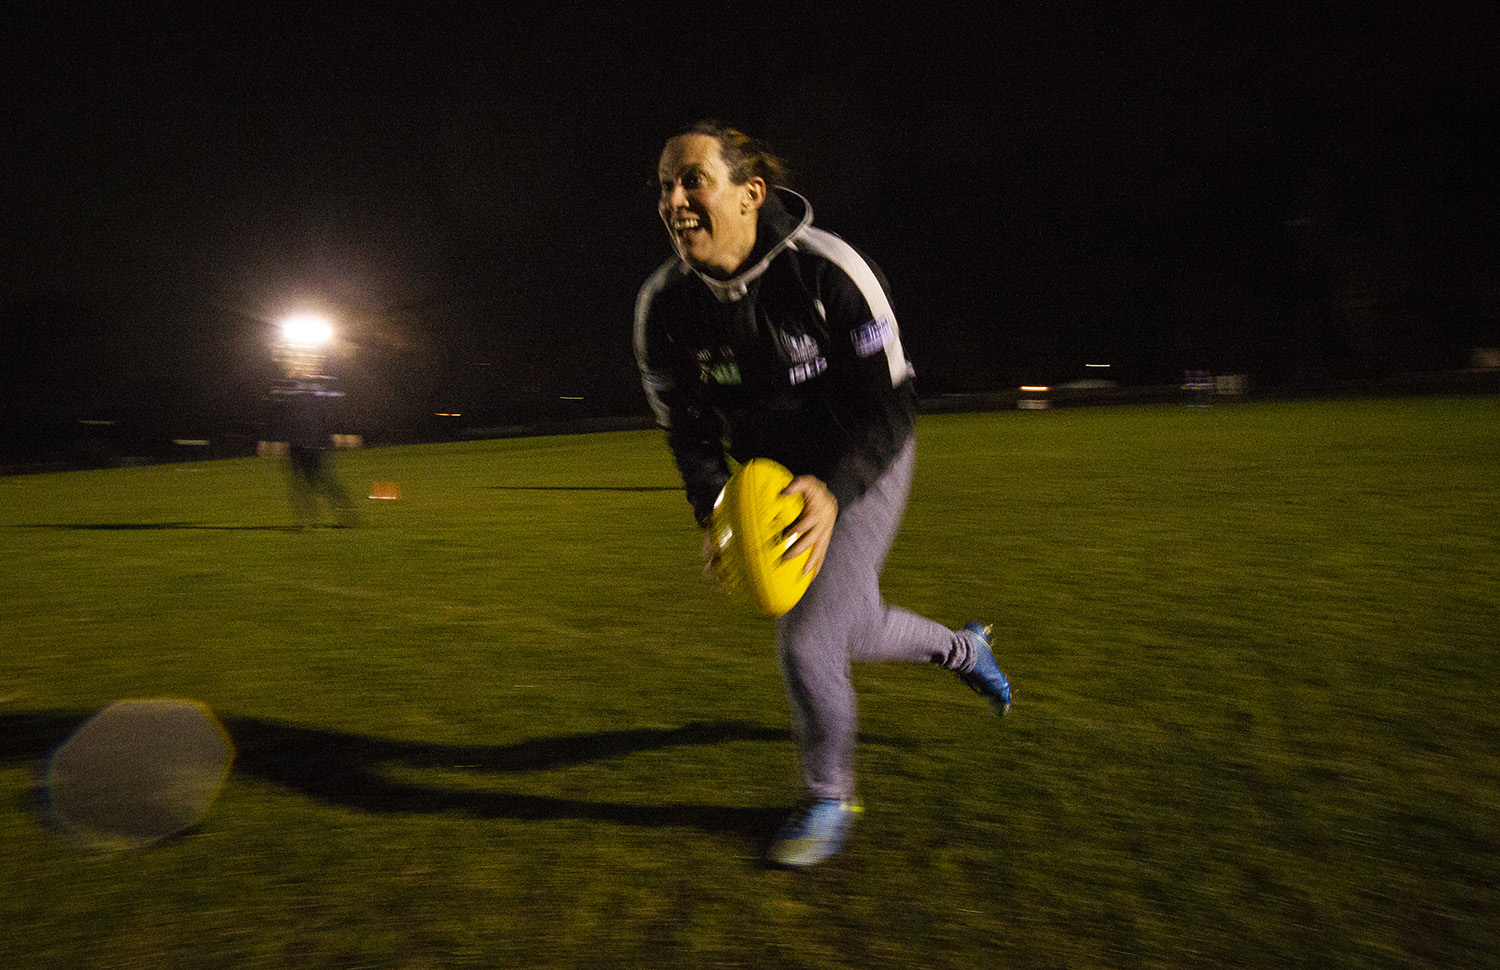 Even in the depths of a winter training session the joy of participating in a team game was evident with Hay.